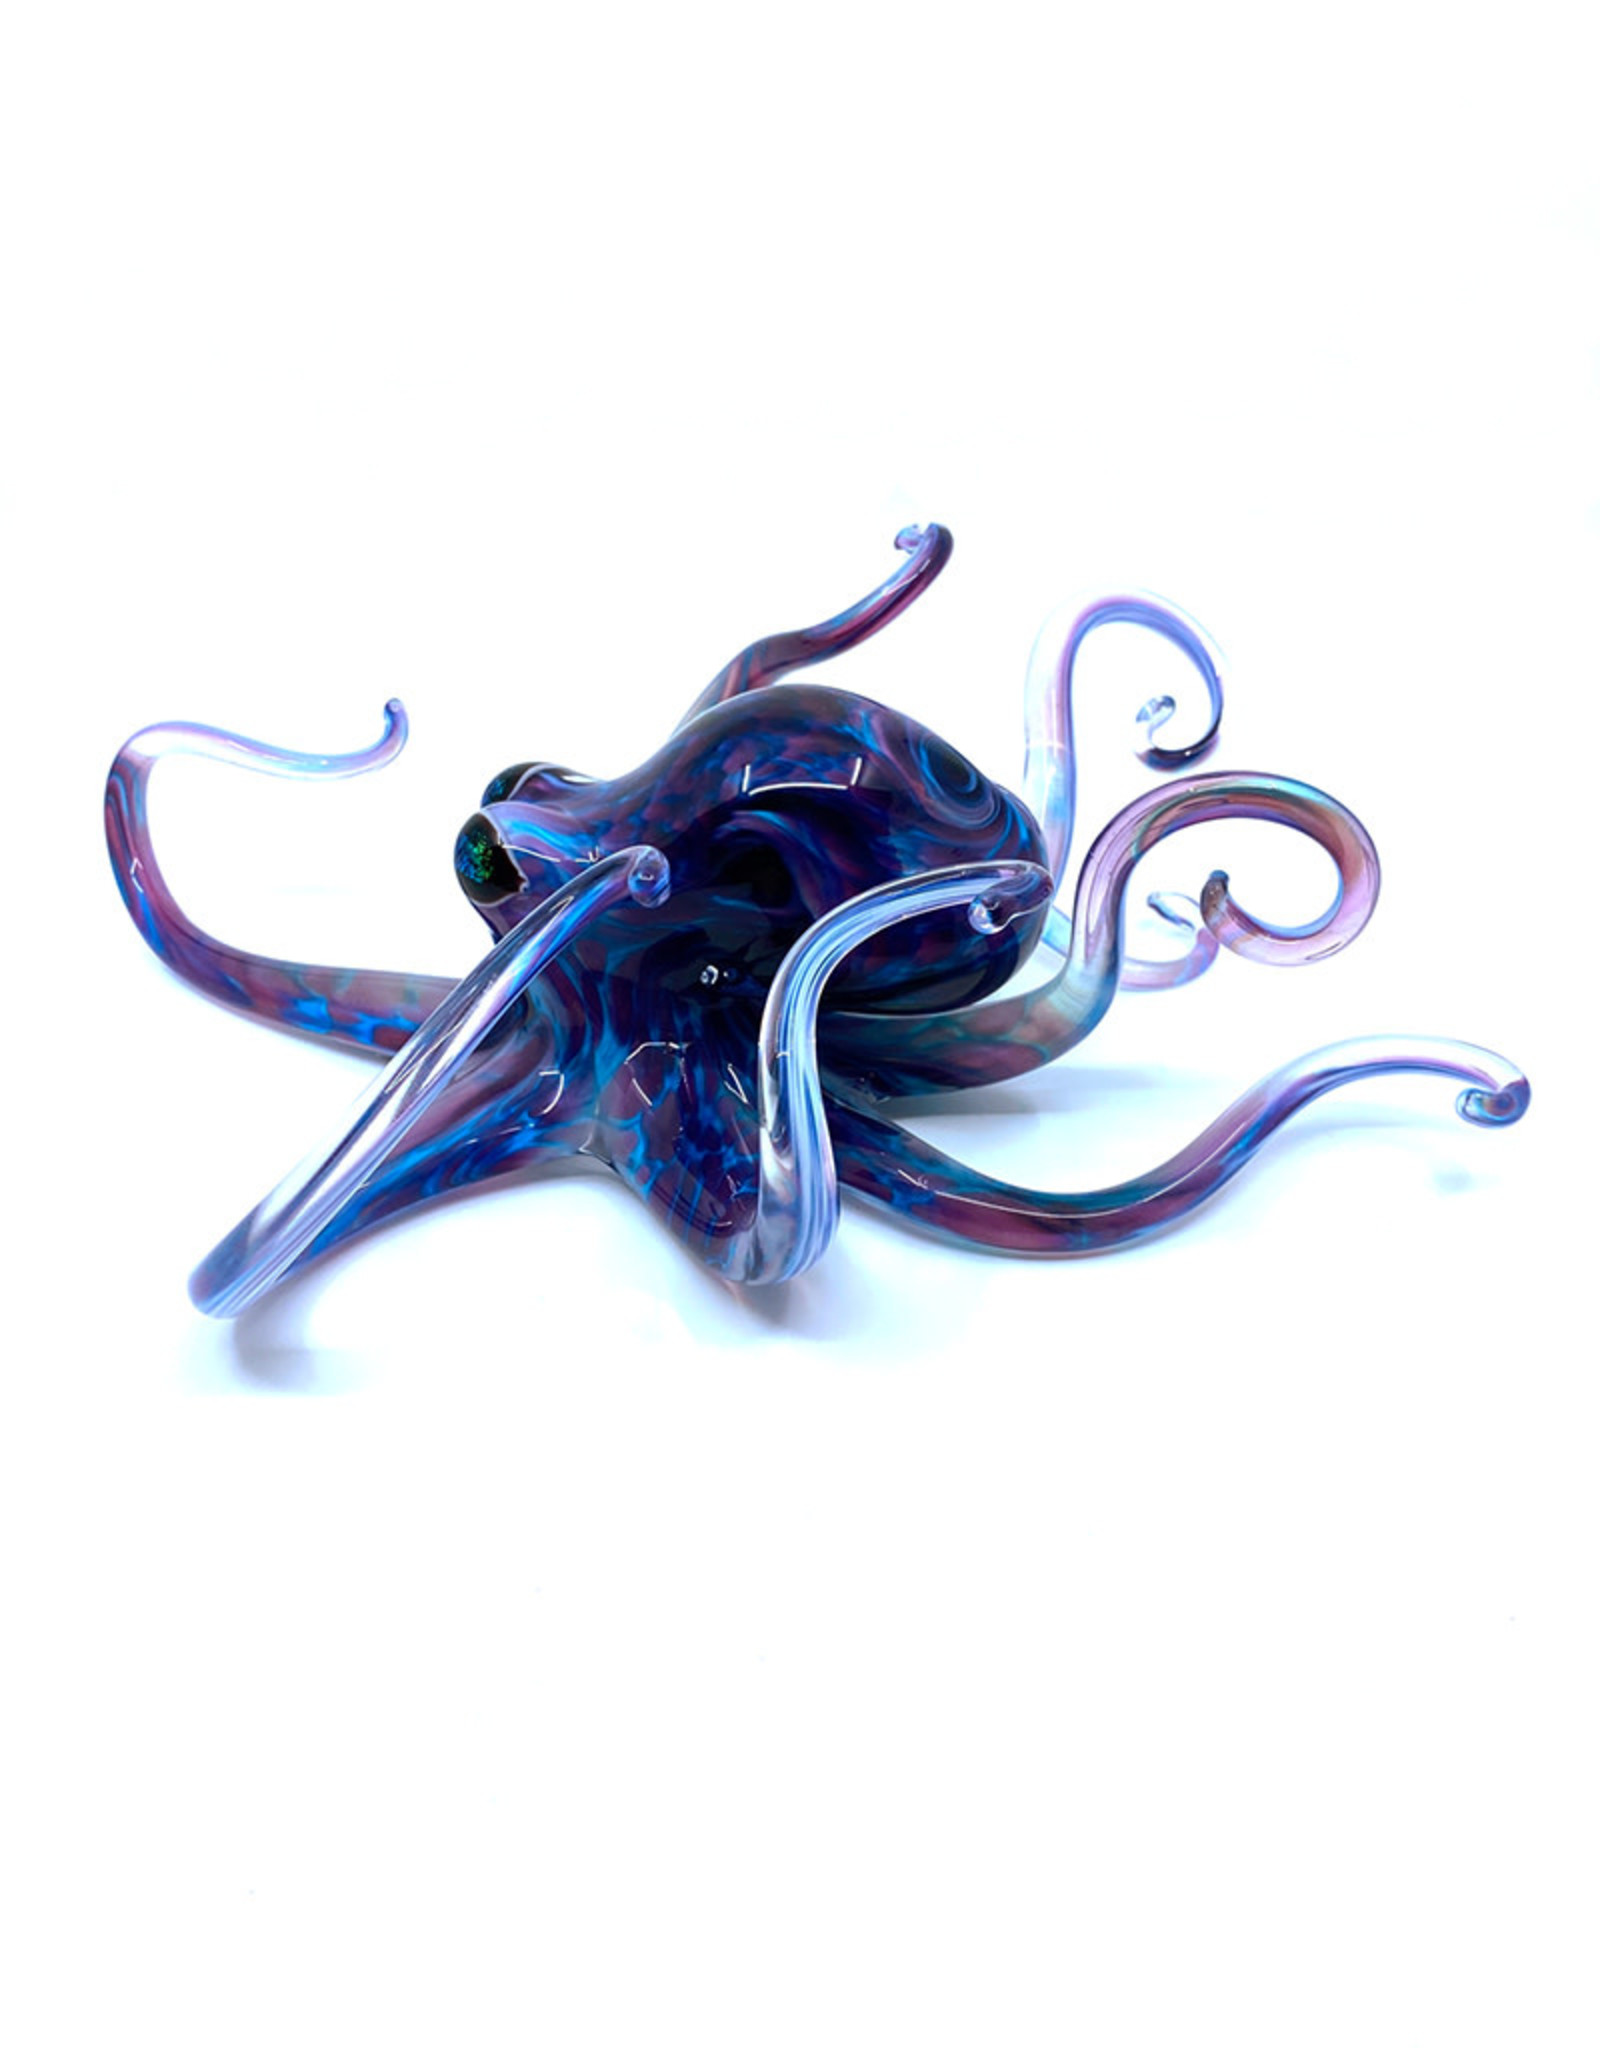 MICHAEL HOPKO SMALL TWILIGHT OCTOPUS